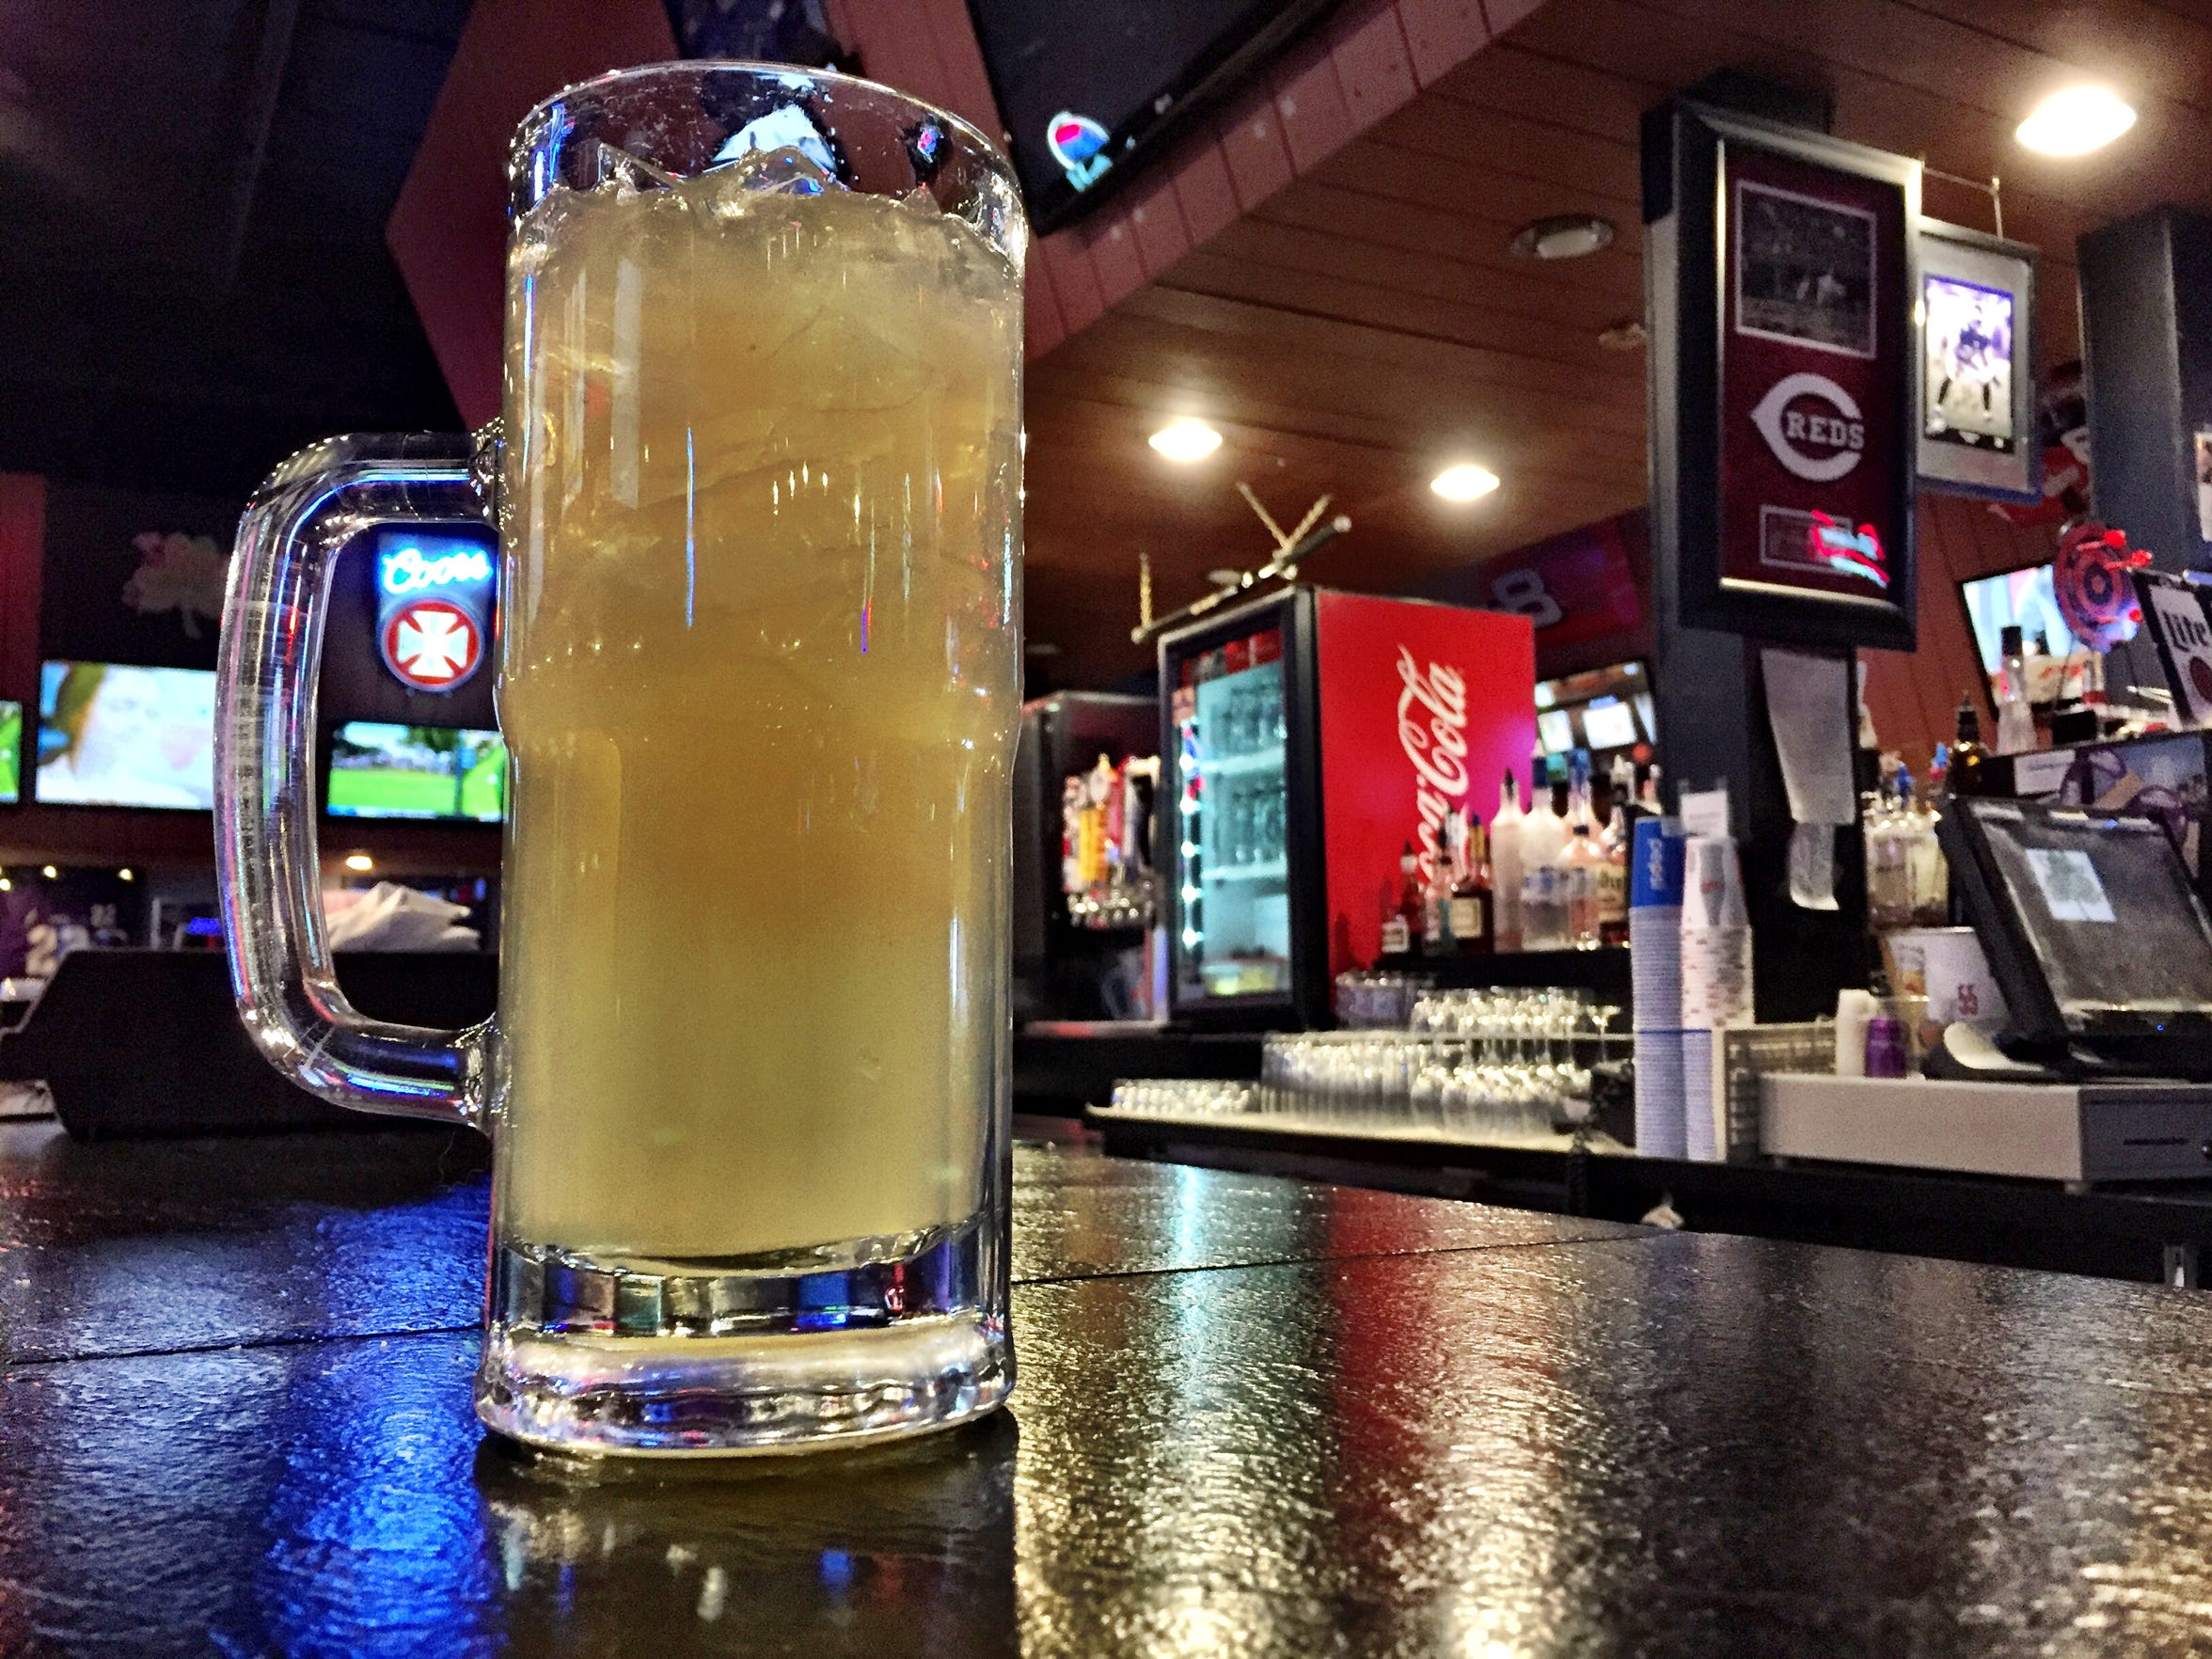 The Sting Zing, a signature cocktail, is made with gin, vodka and rum at the Sting sports bar.